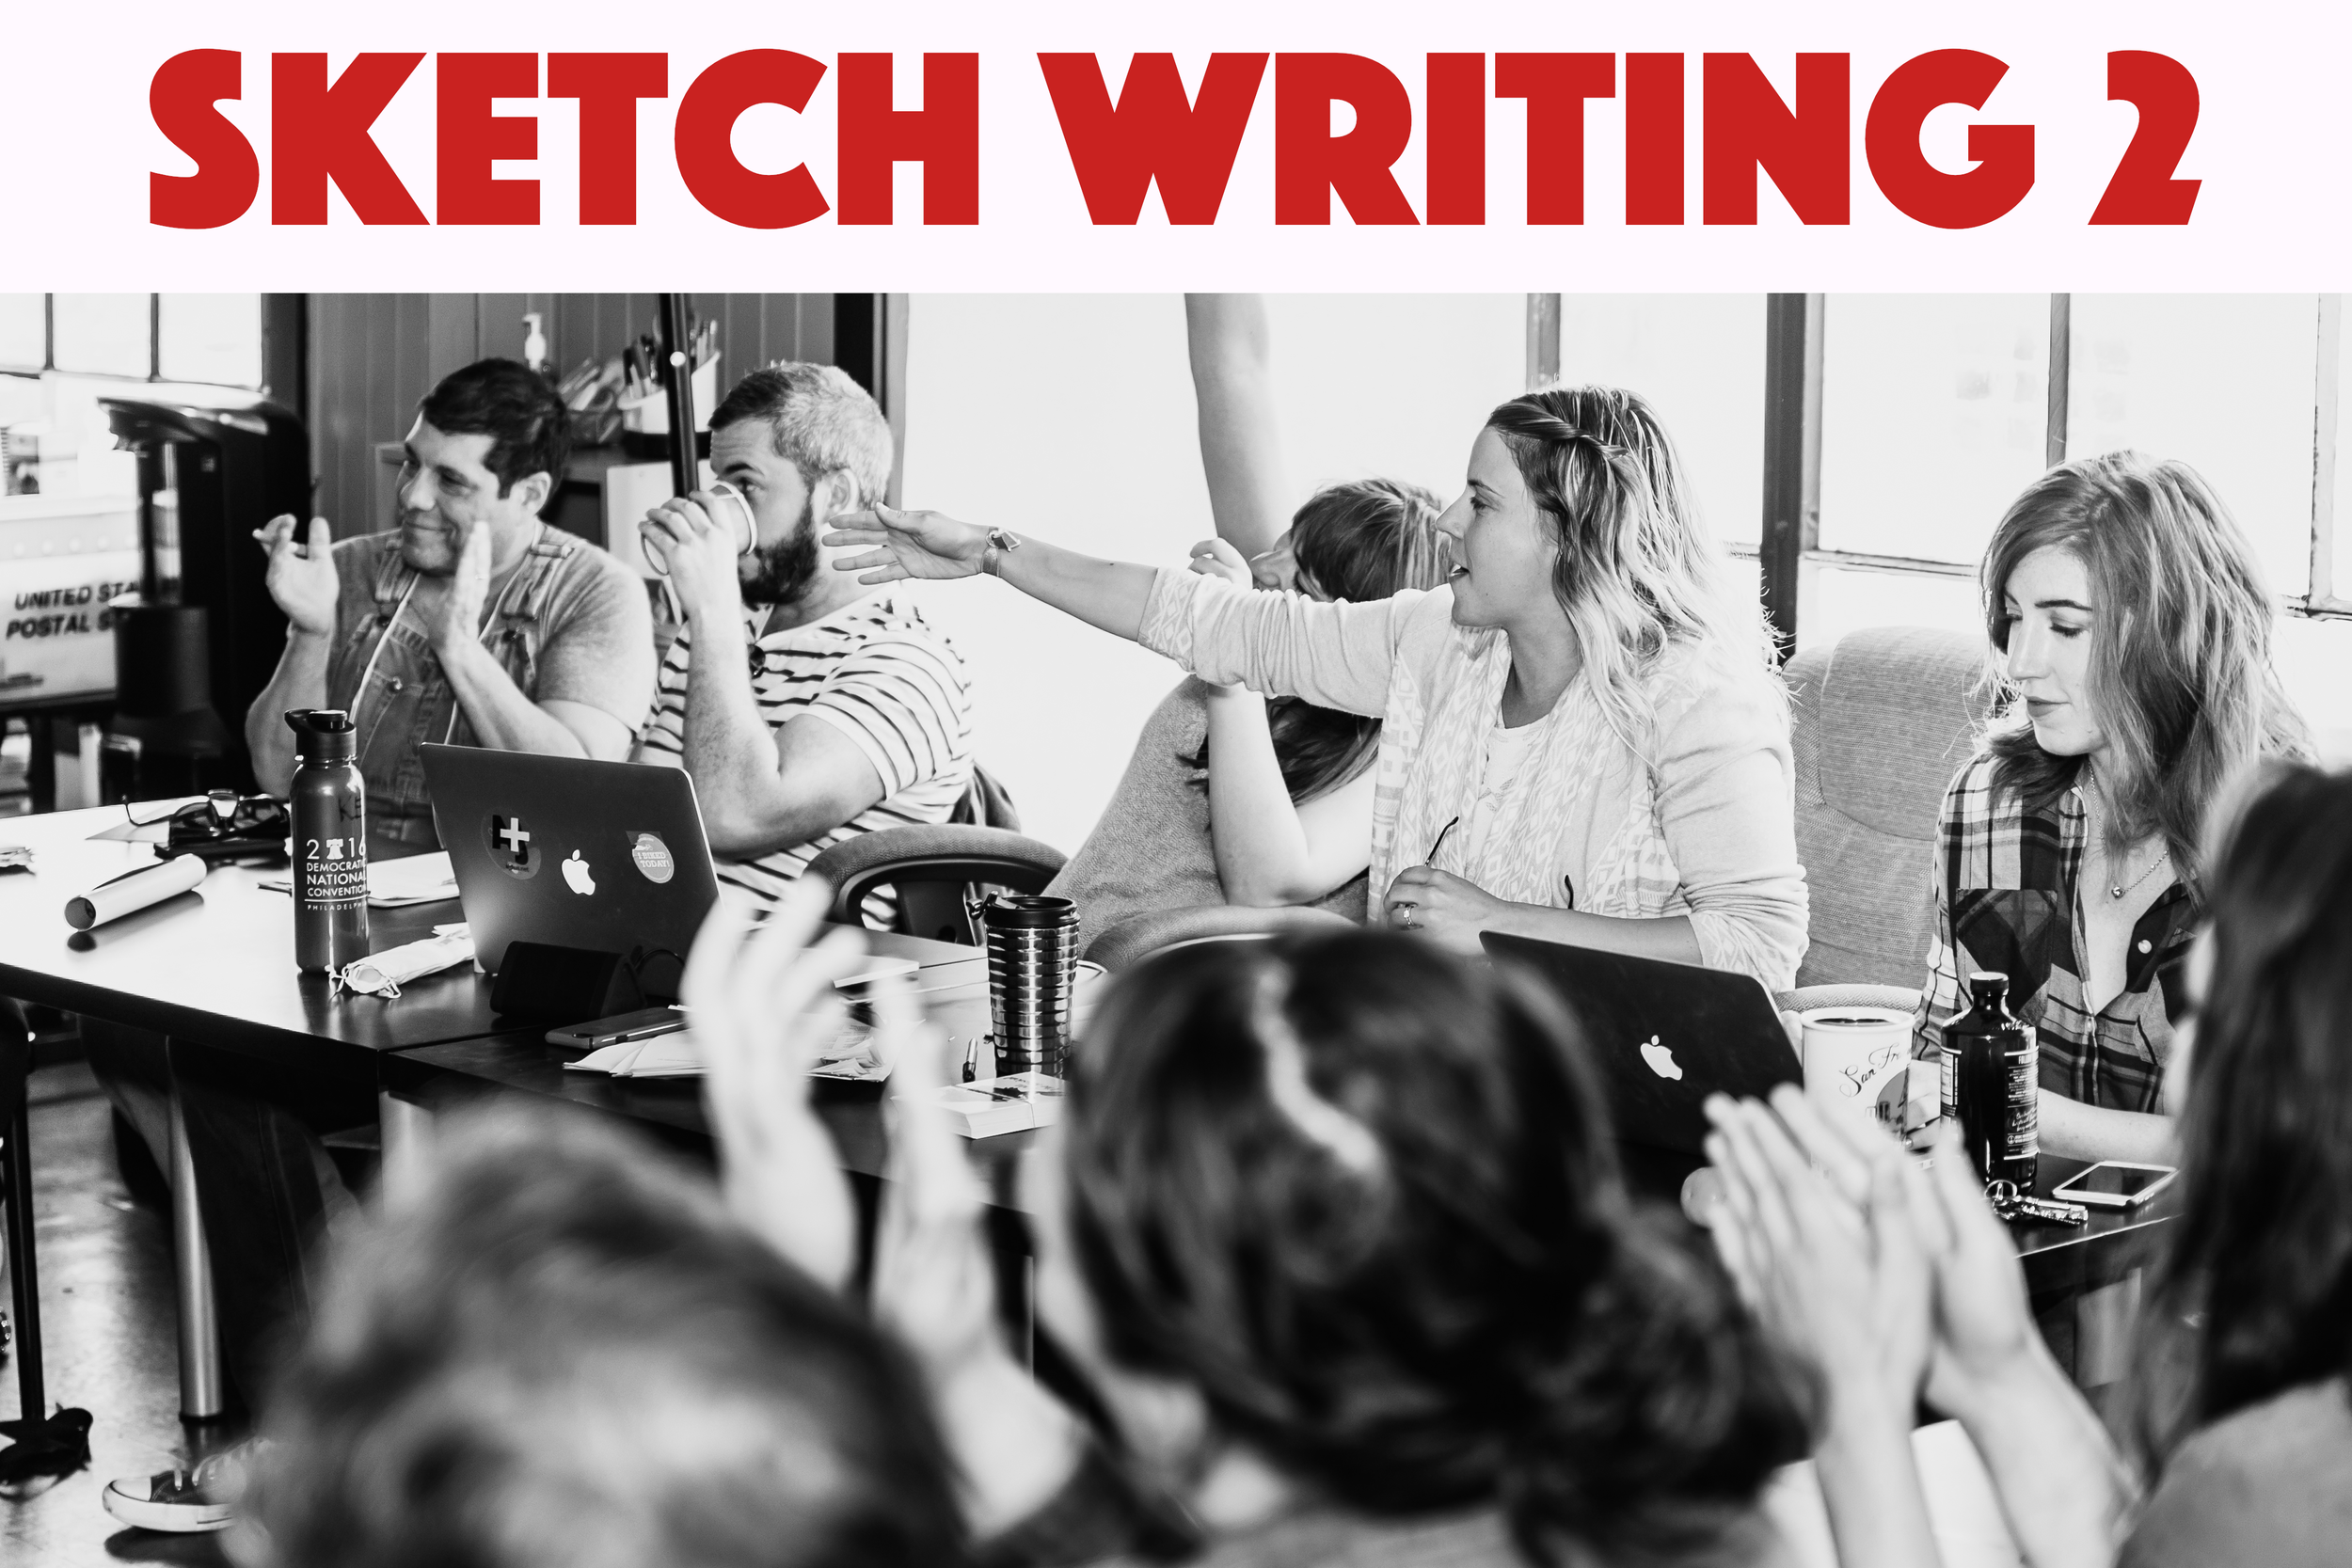 Expand your knowledge of the craft of sketch comedy writing, and workshop your sketches with professional actors. Sketch Writing 2 is open to students who have completed Sketch Writing 1.